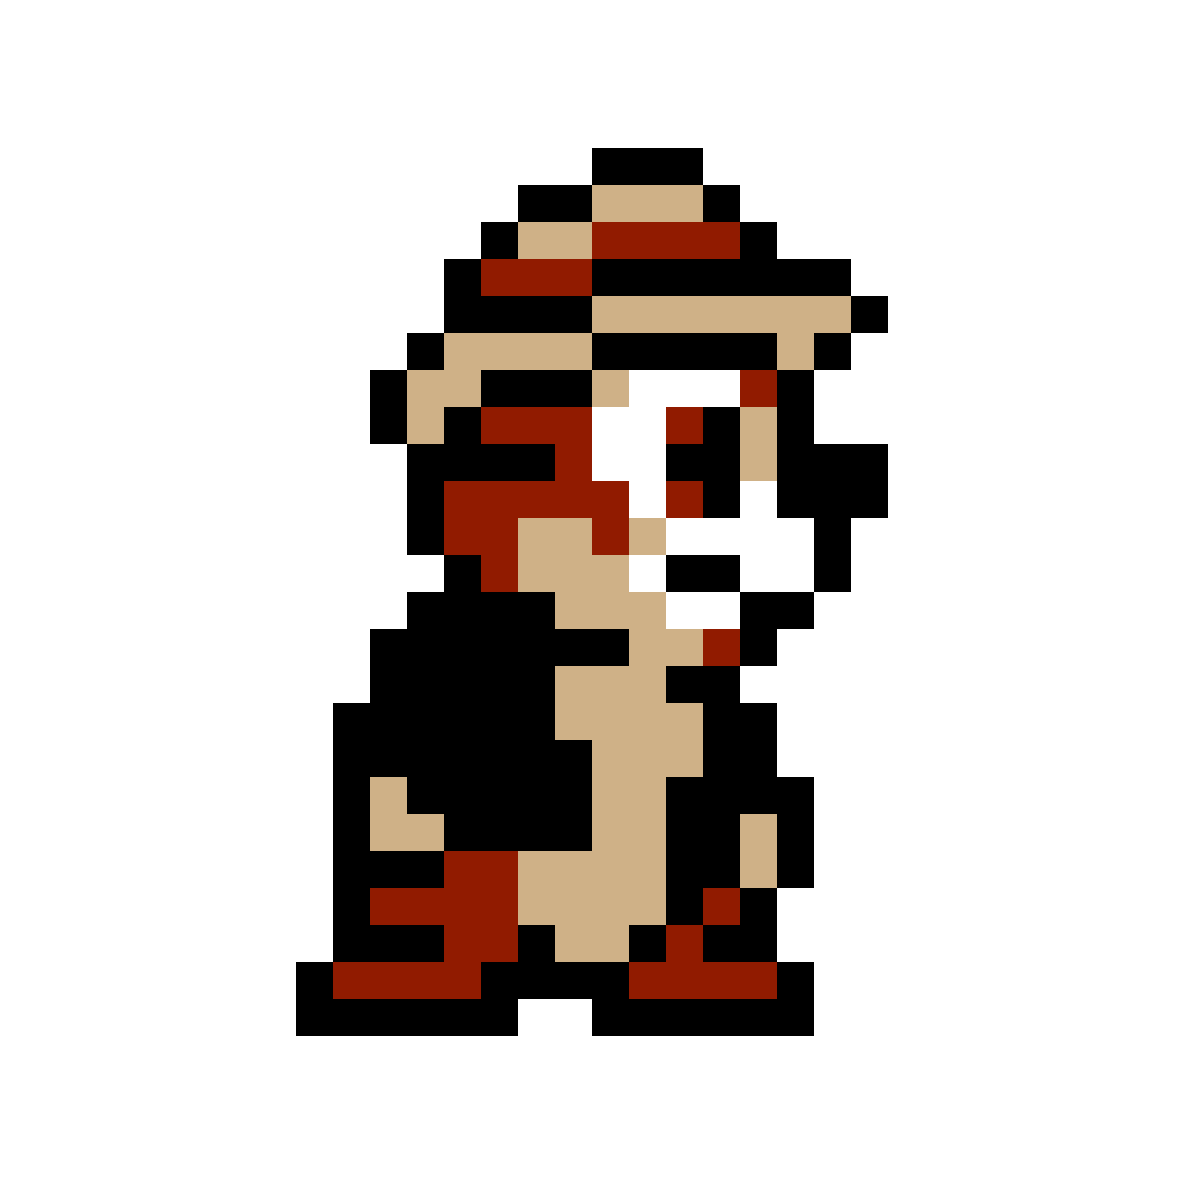 Pixilart Chip N Dale 8 Bit Pixel Art By Pattison